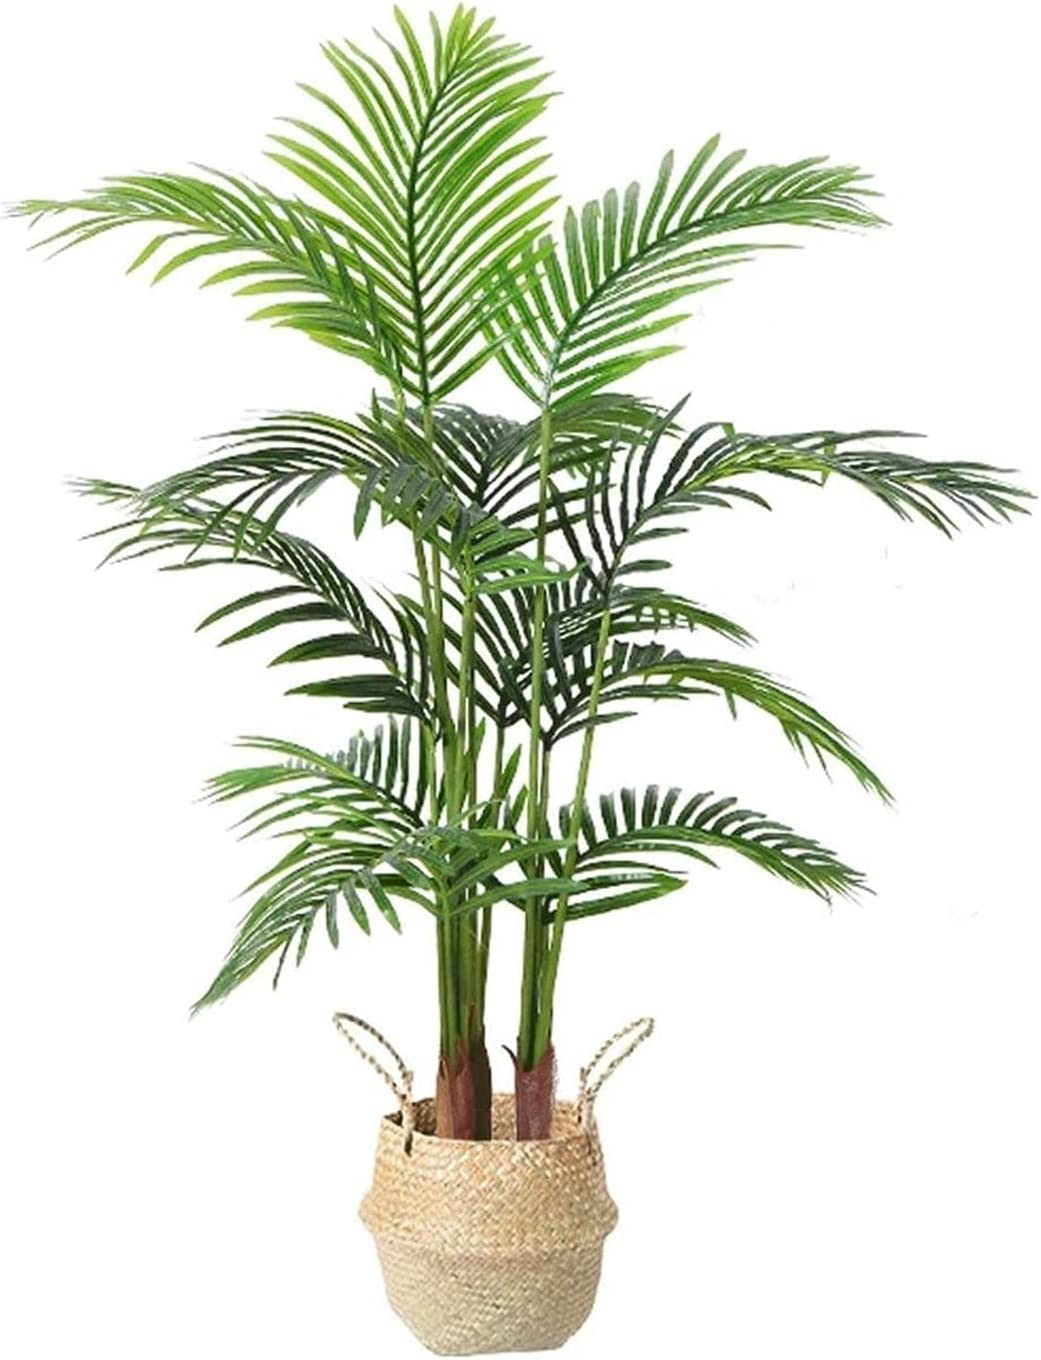 Popular products DSWHM Artificial Super special price Bonsai Tree 47 Inches Floor Fake f Plant - Tall